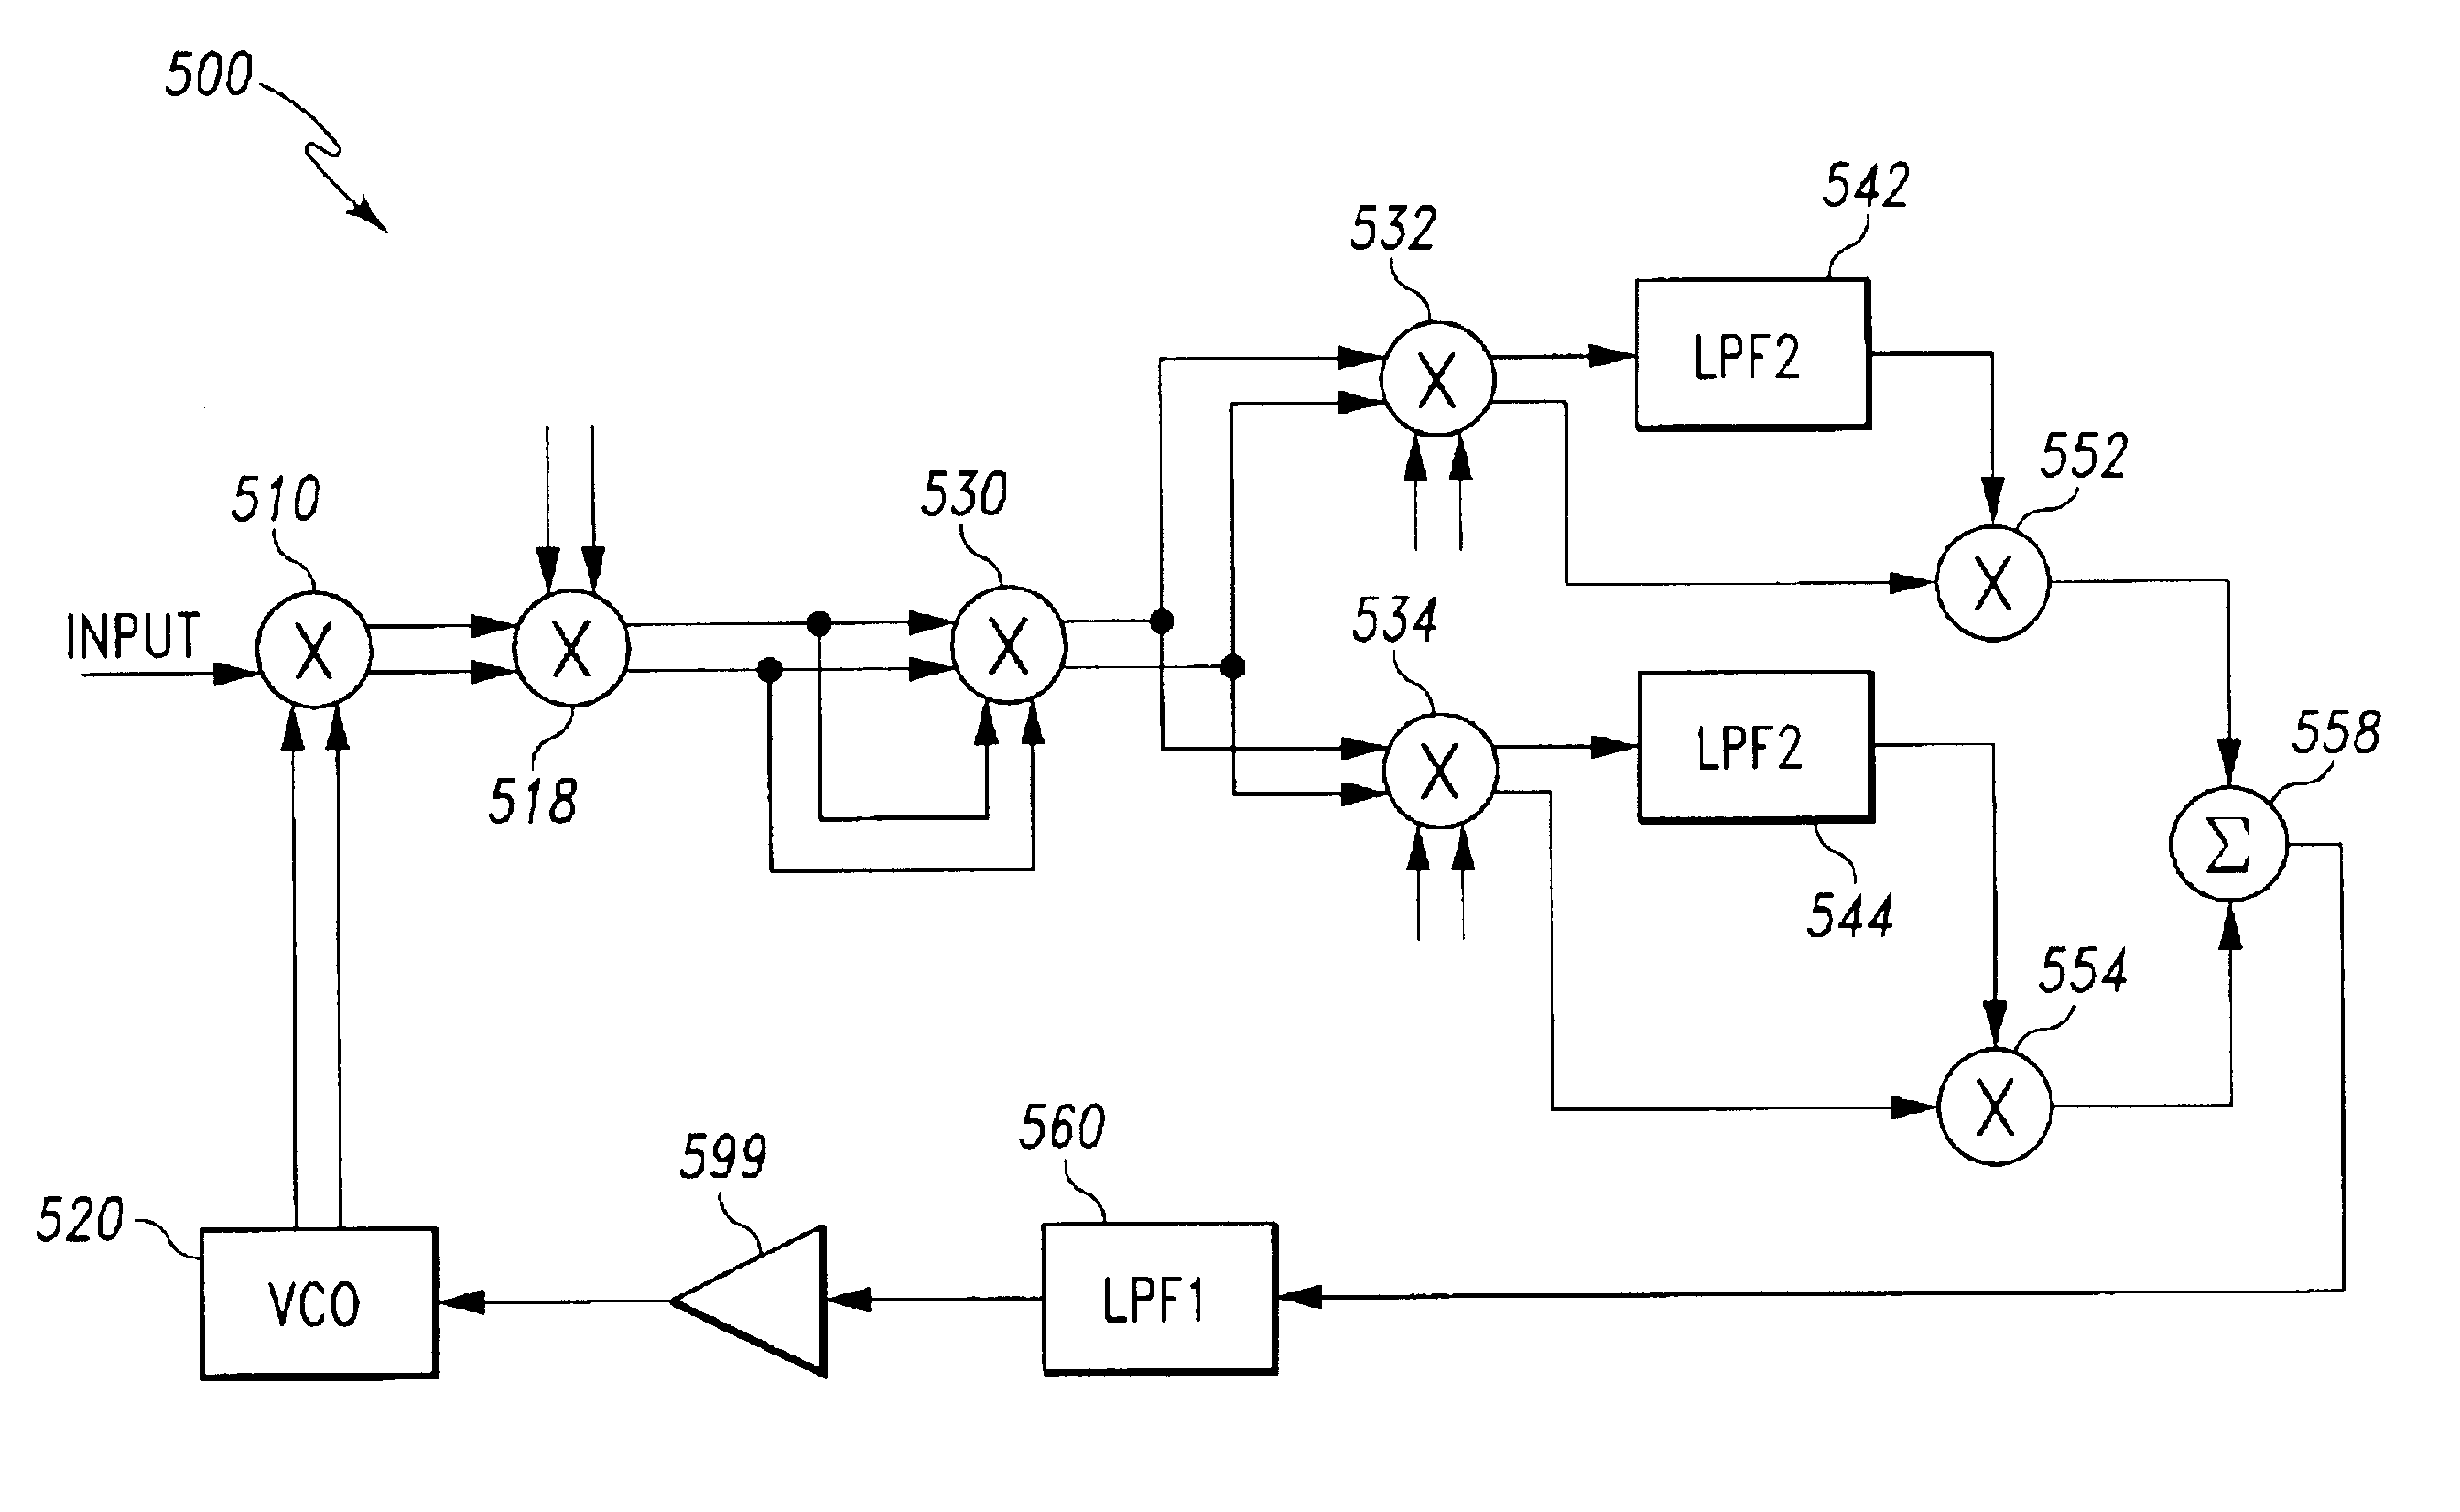 phase locked loop and frequency The figure shows the block diagram of the phase locked loop system in fm transmitter that consists of different blocks such as a crystal oscillator, phase detector, loop filter, voltage controlled oscillator (vco), and frequency divider.